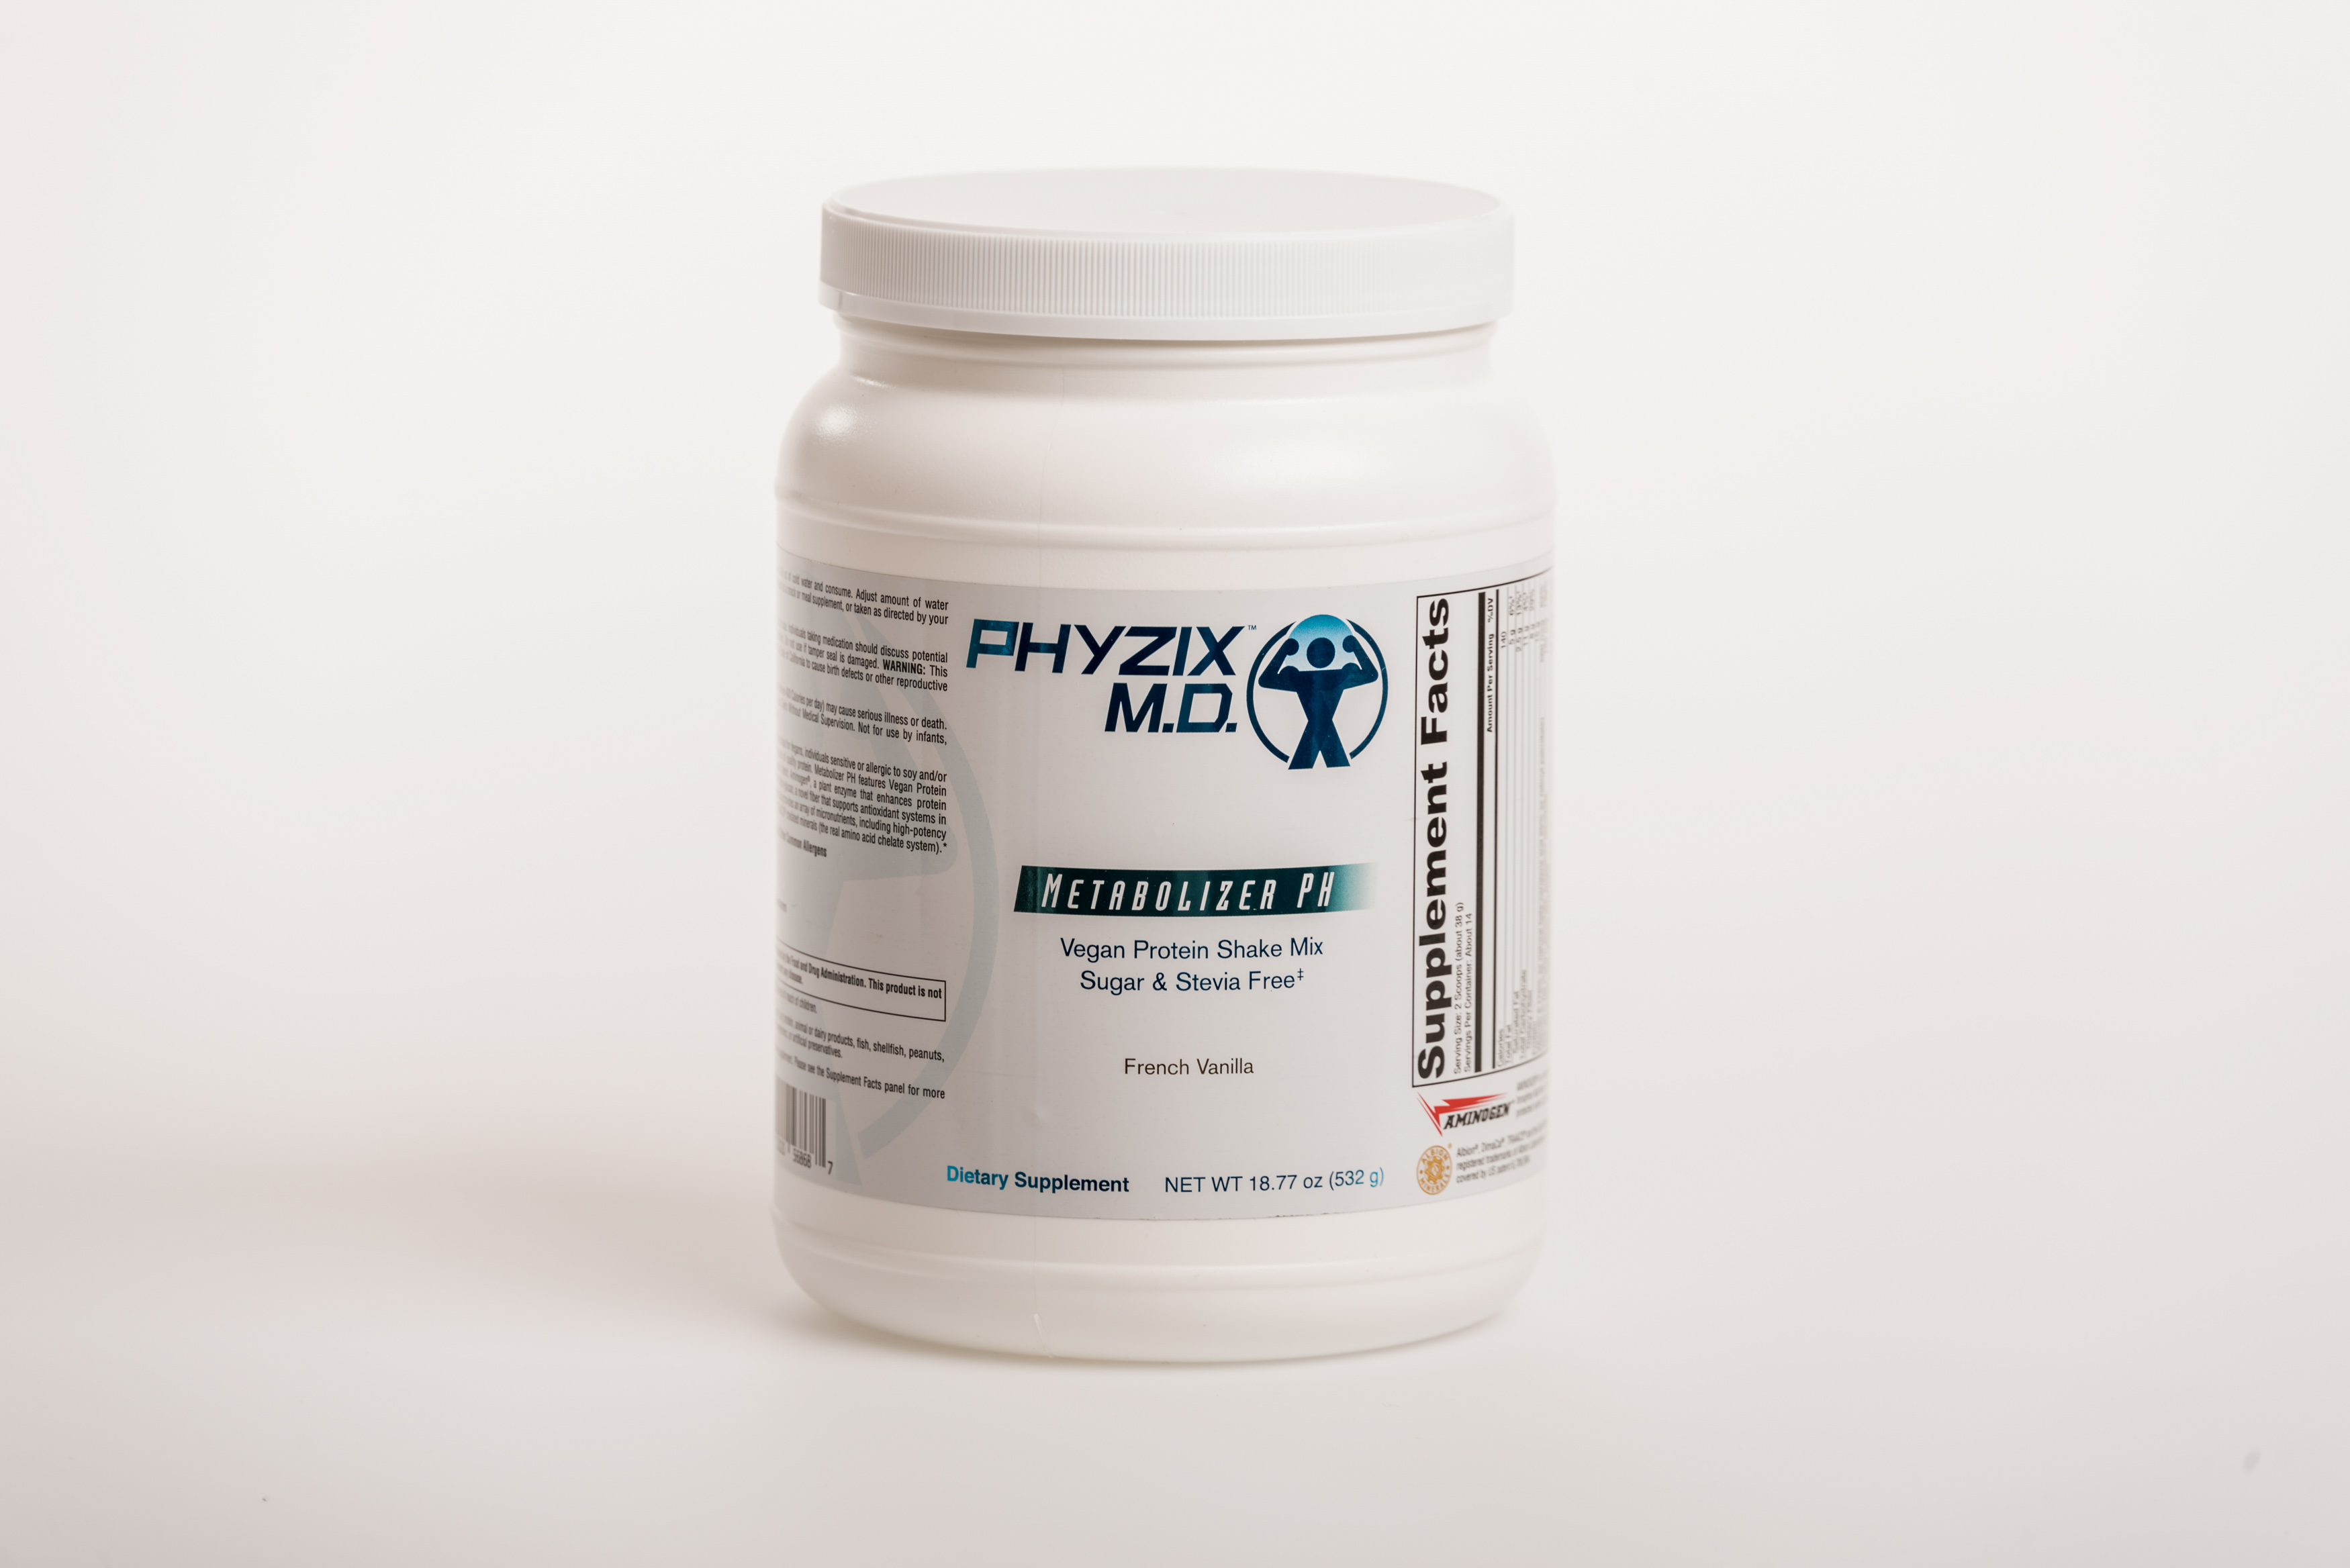 Metabolizer PH is a protein powder in the cleanse program.